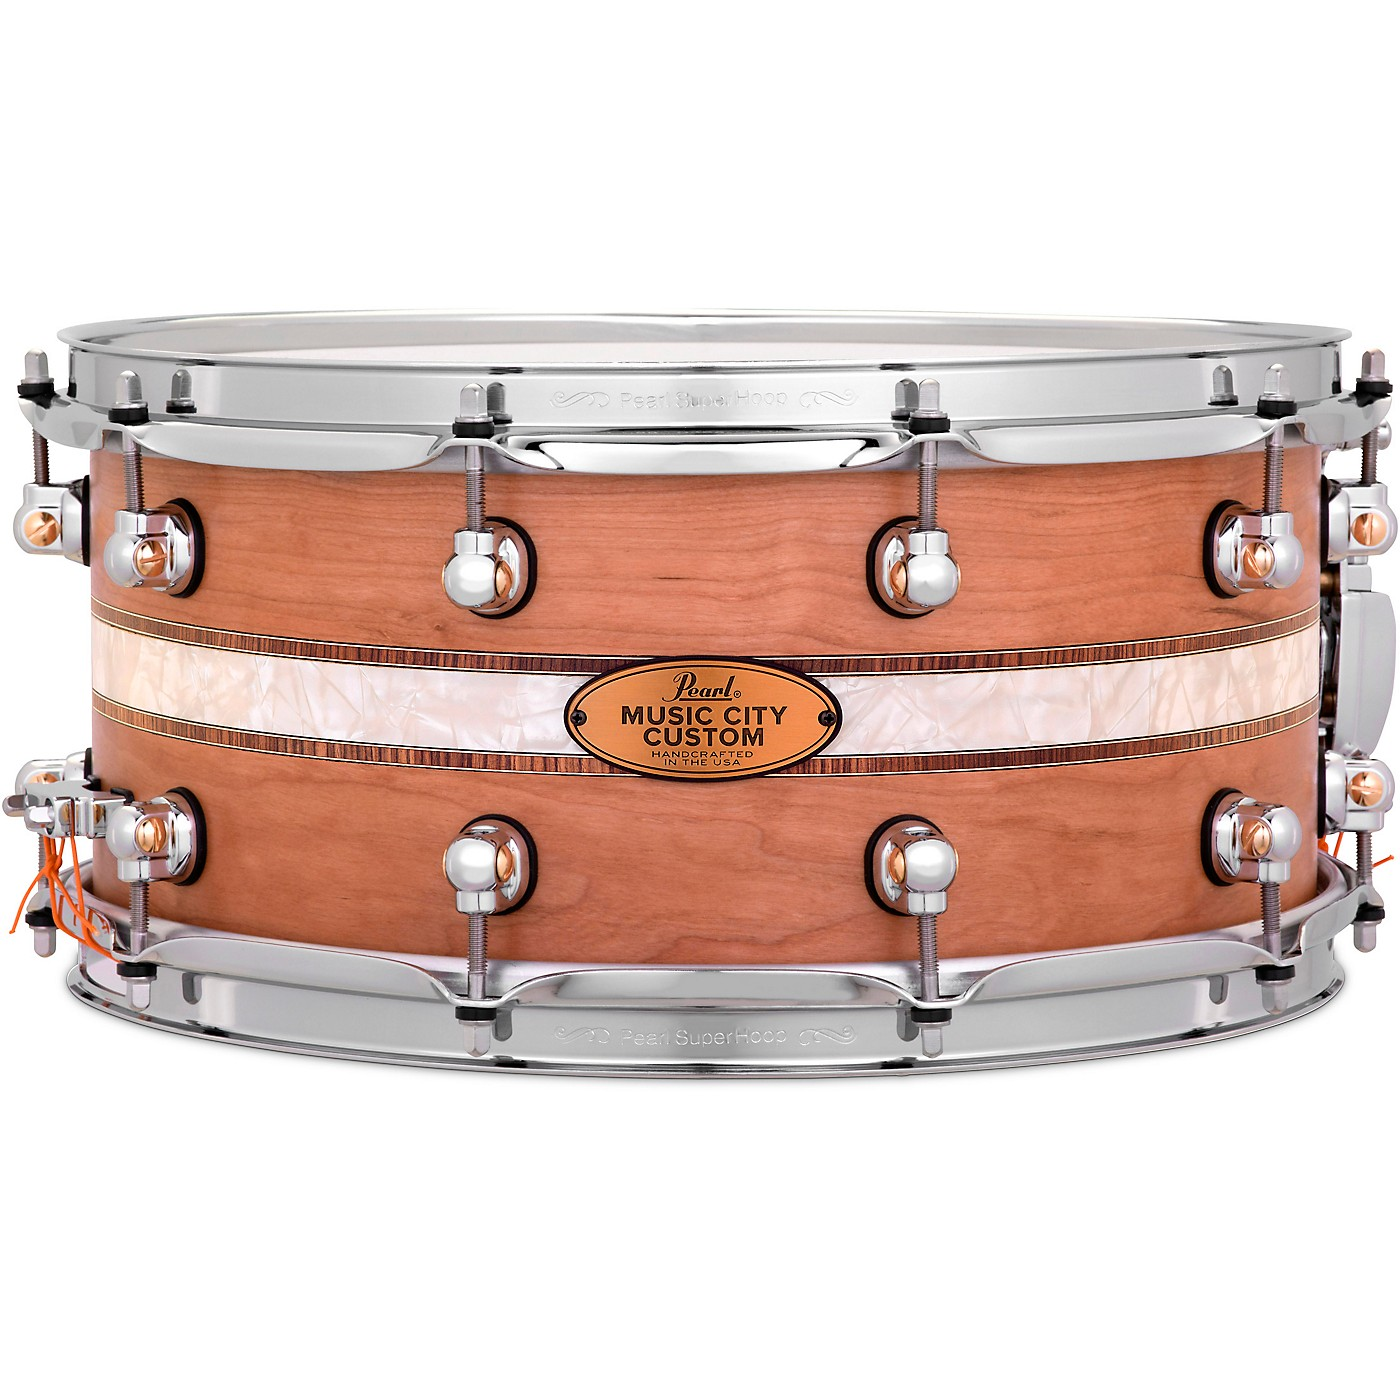 Pearl Music City Custom Solid Shell Snare Cherry with Kingwood Royal Inlay thumbnail